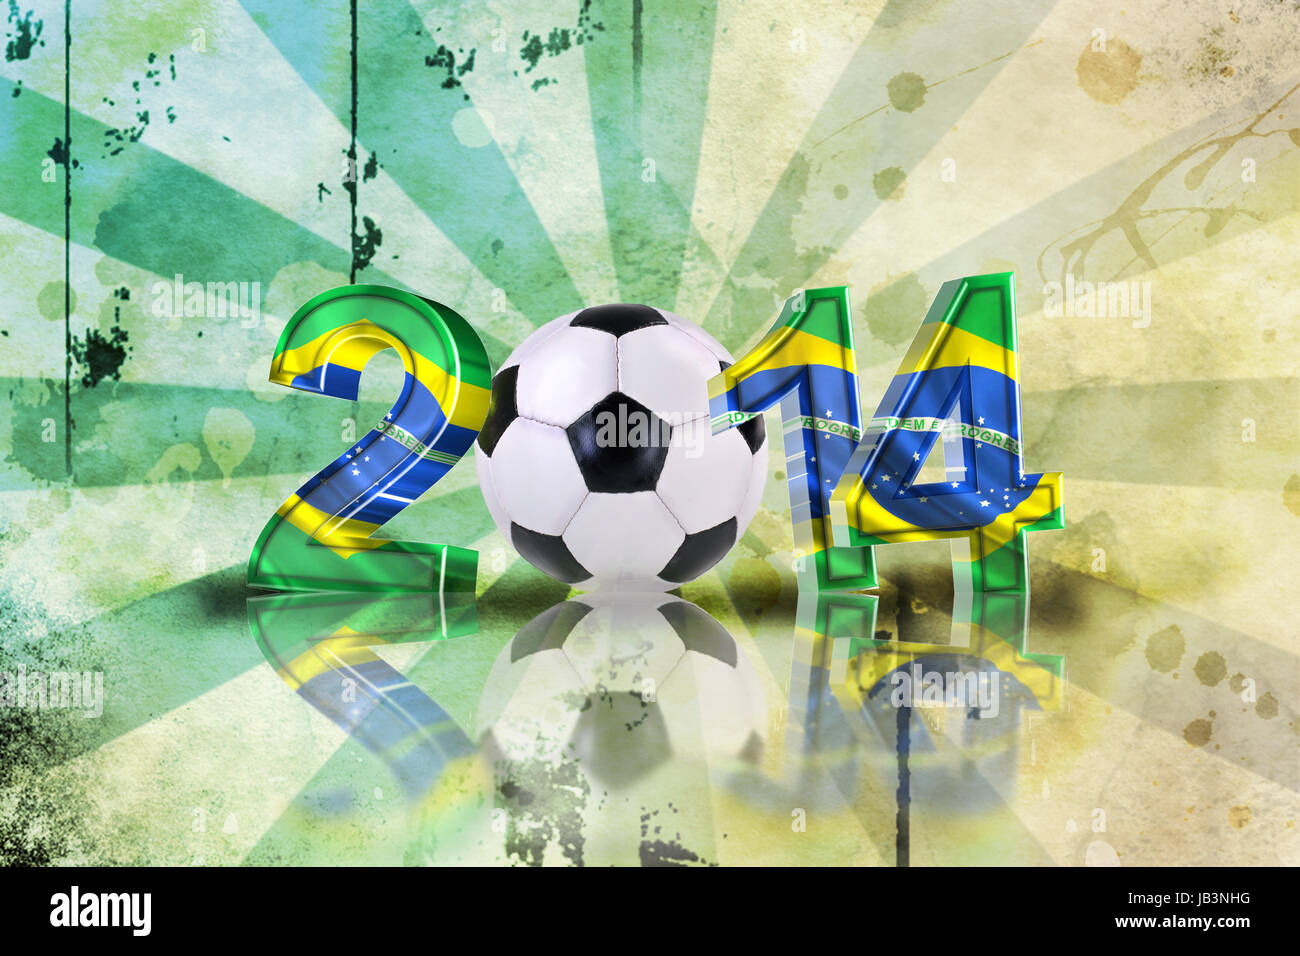 2014 soccer event - Stock Image